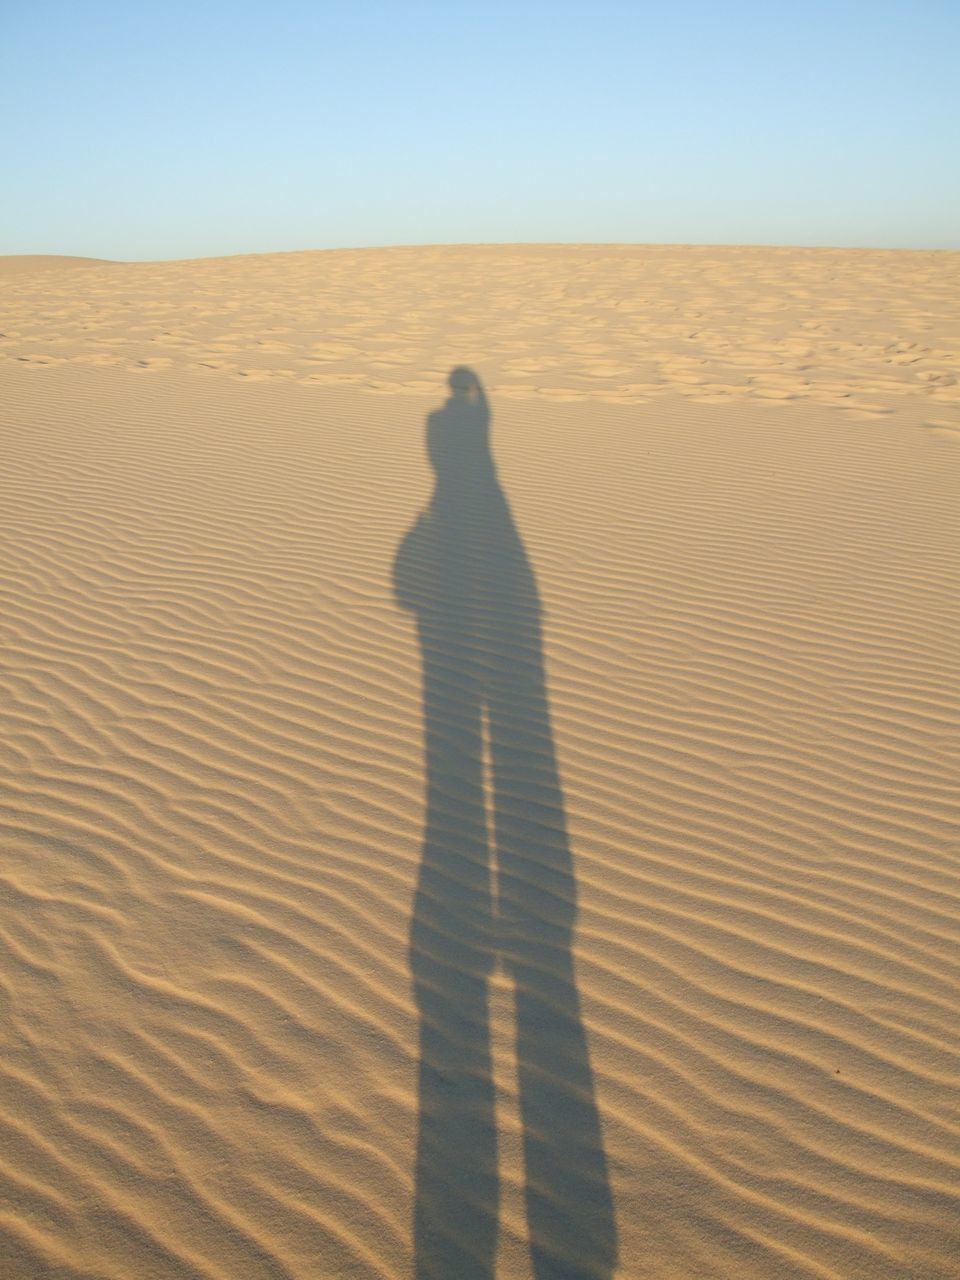 Shadow Of Man On Sand In Desert Against Clear Sky